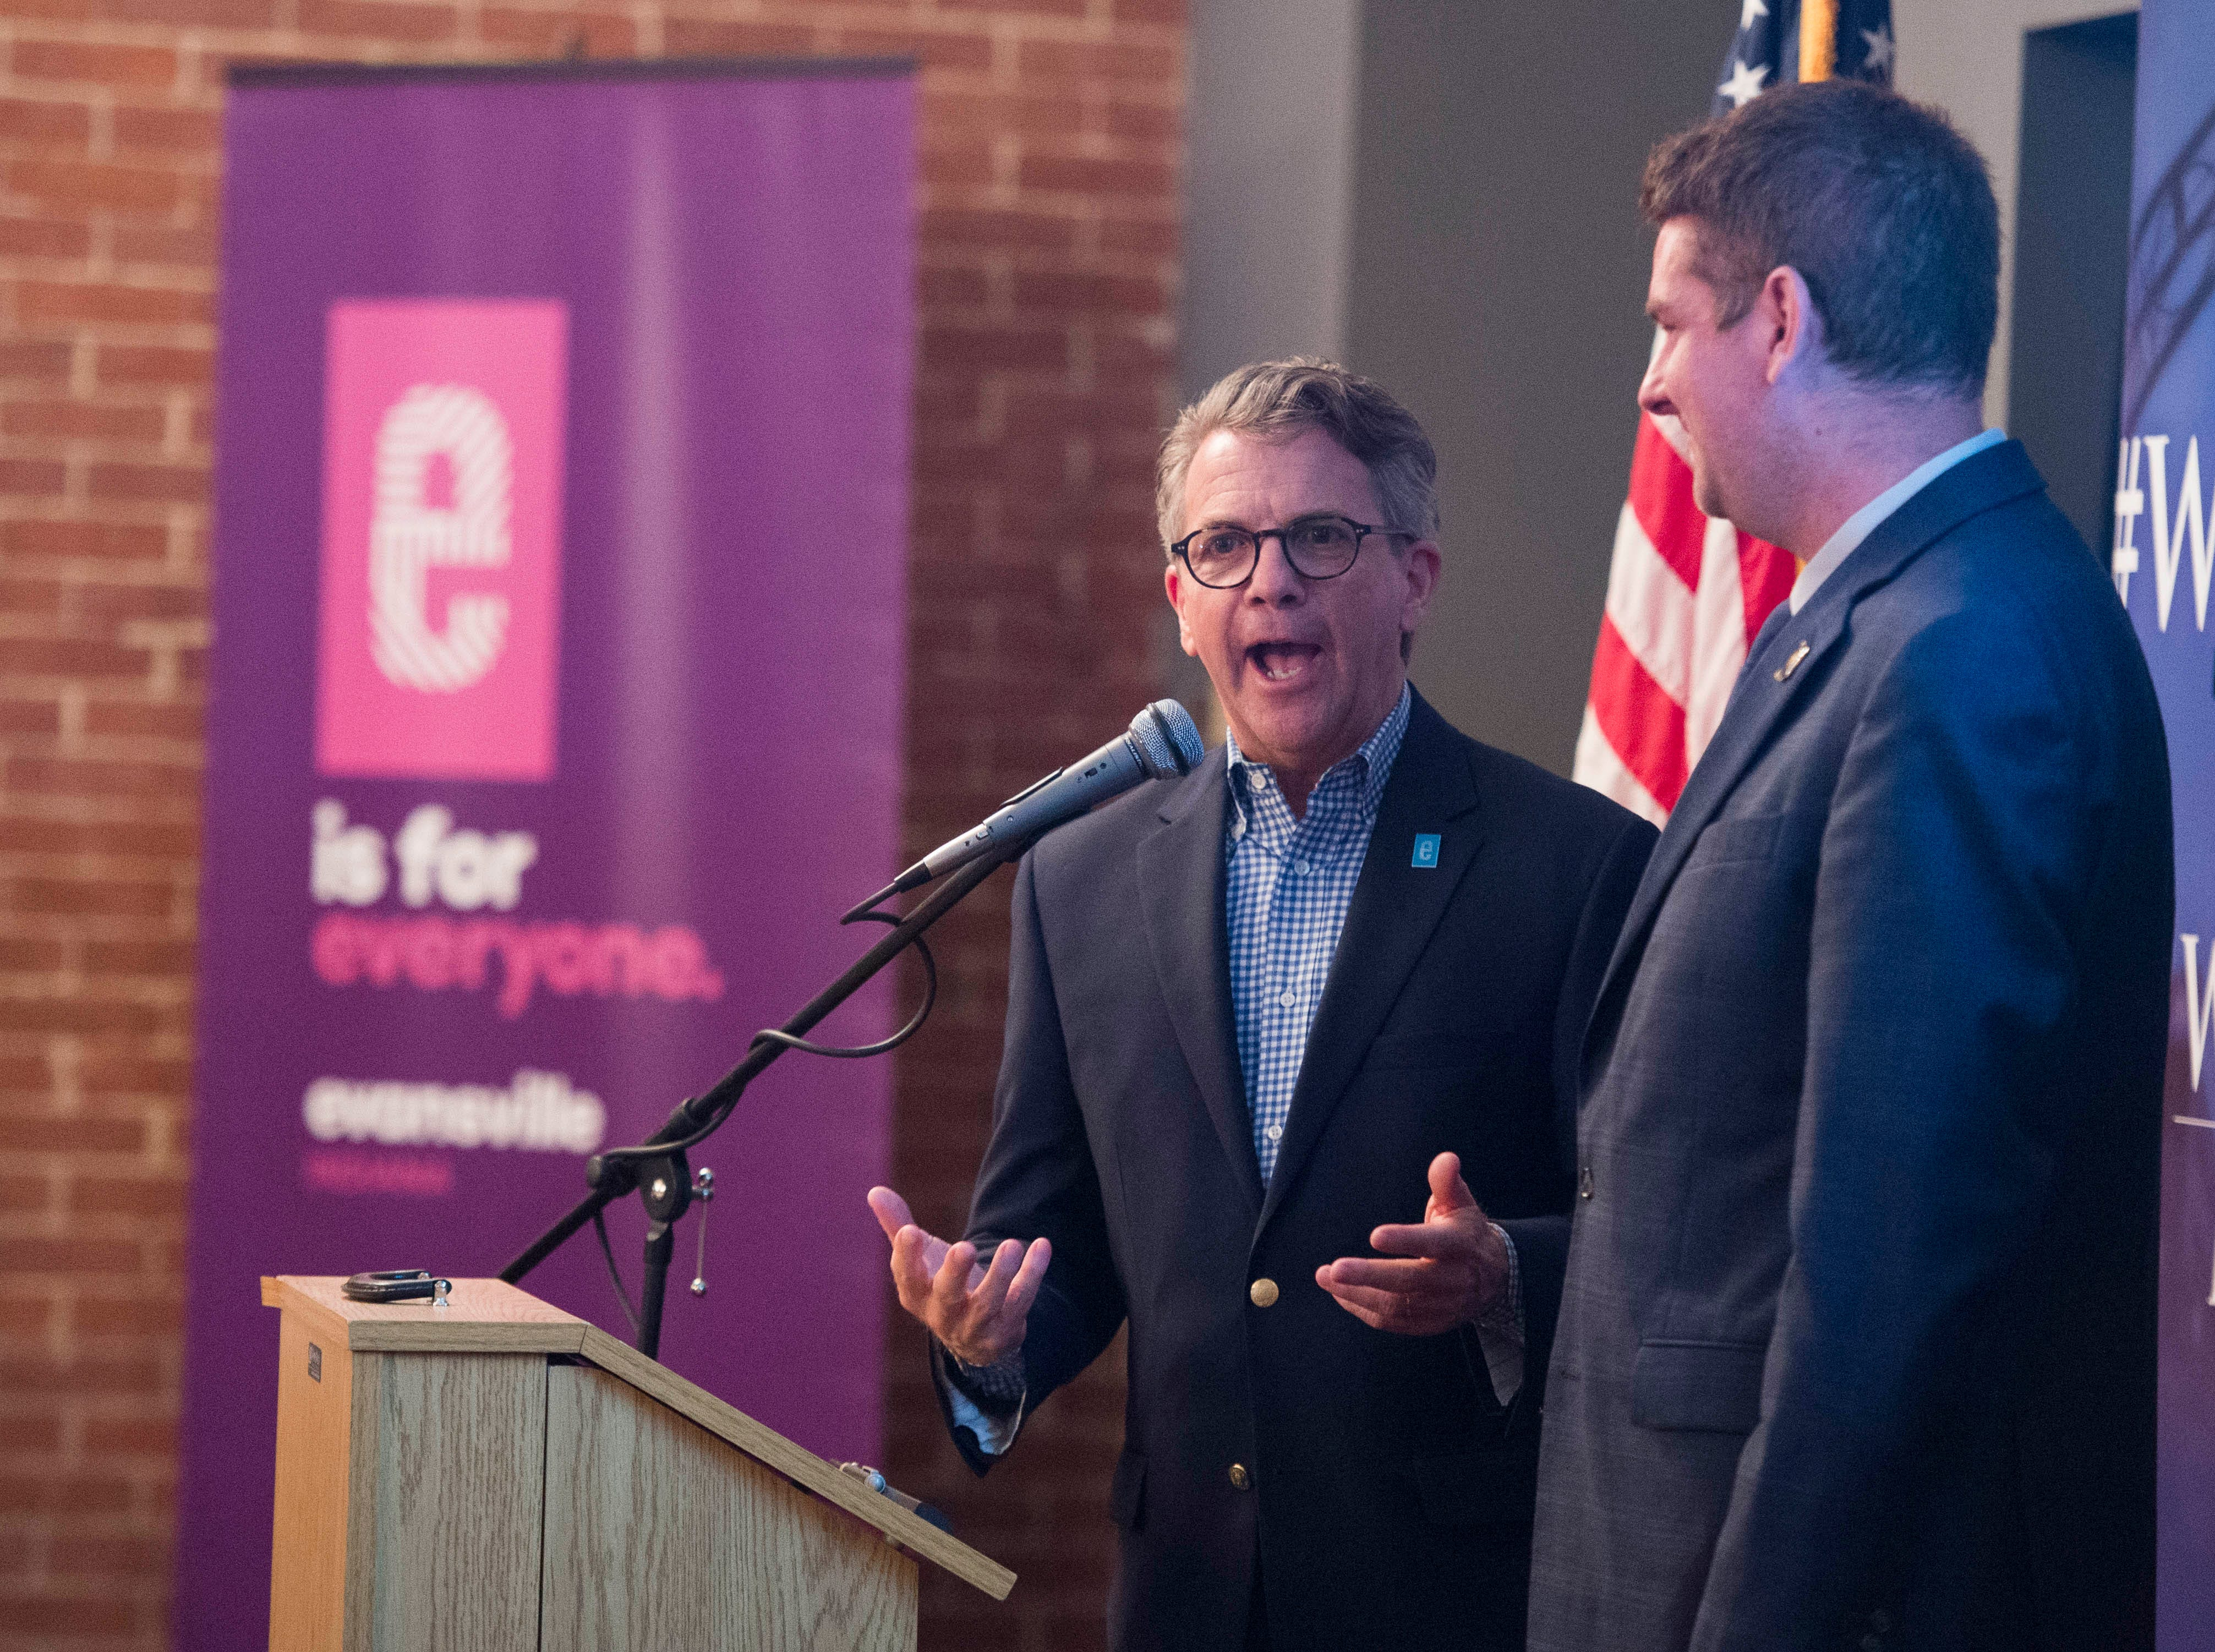 """Evansville Mayor Lloyd Winnecke (R), left, sings """"Happy Birthday"""" to city council at-large candidate Zane Clodfelter (R) during the Vanderburgh County Republican Party's watch party at Sauced! restaurant on Haynie's Corner Tuesday, May 7, 2019. Clodfelter turned 29 years old Tuesday."""